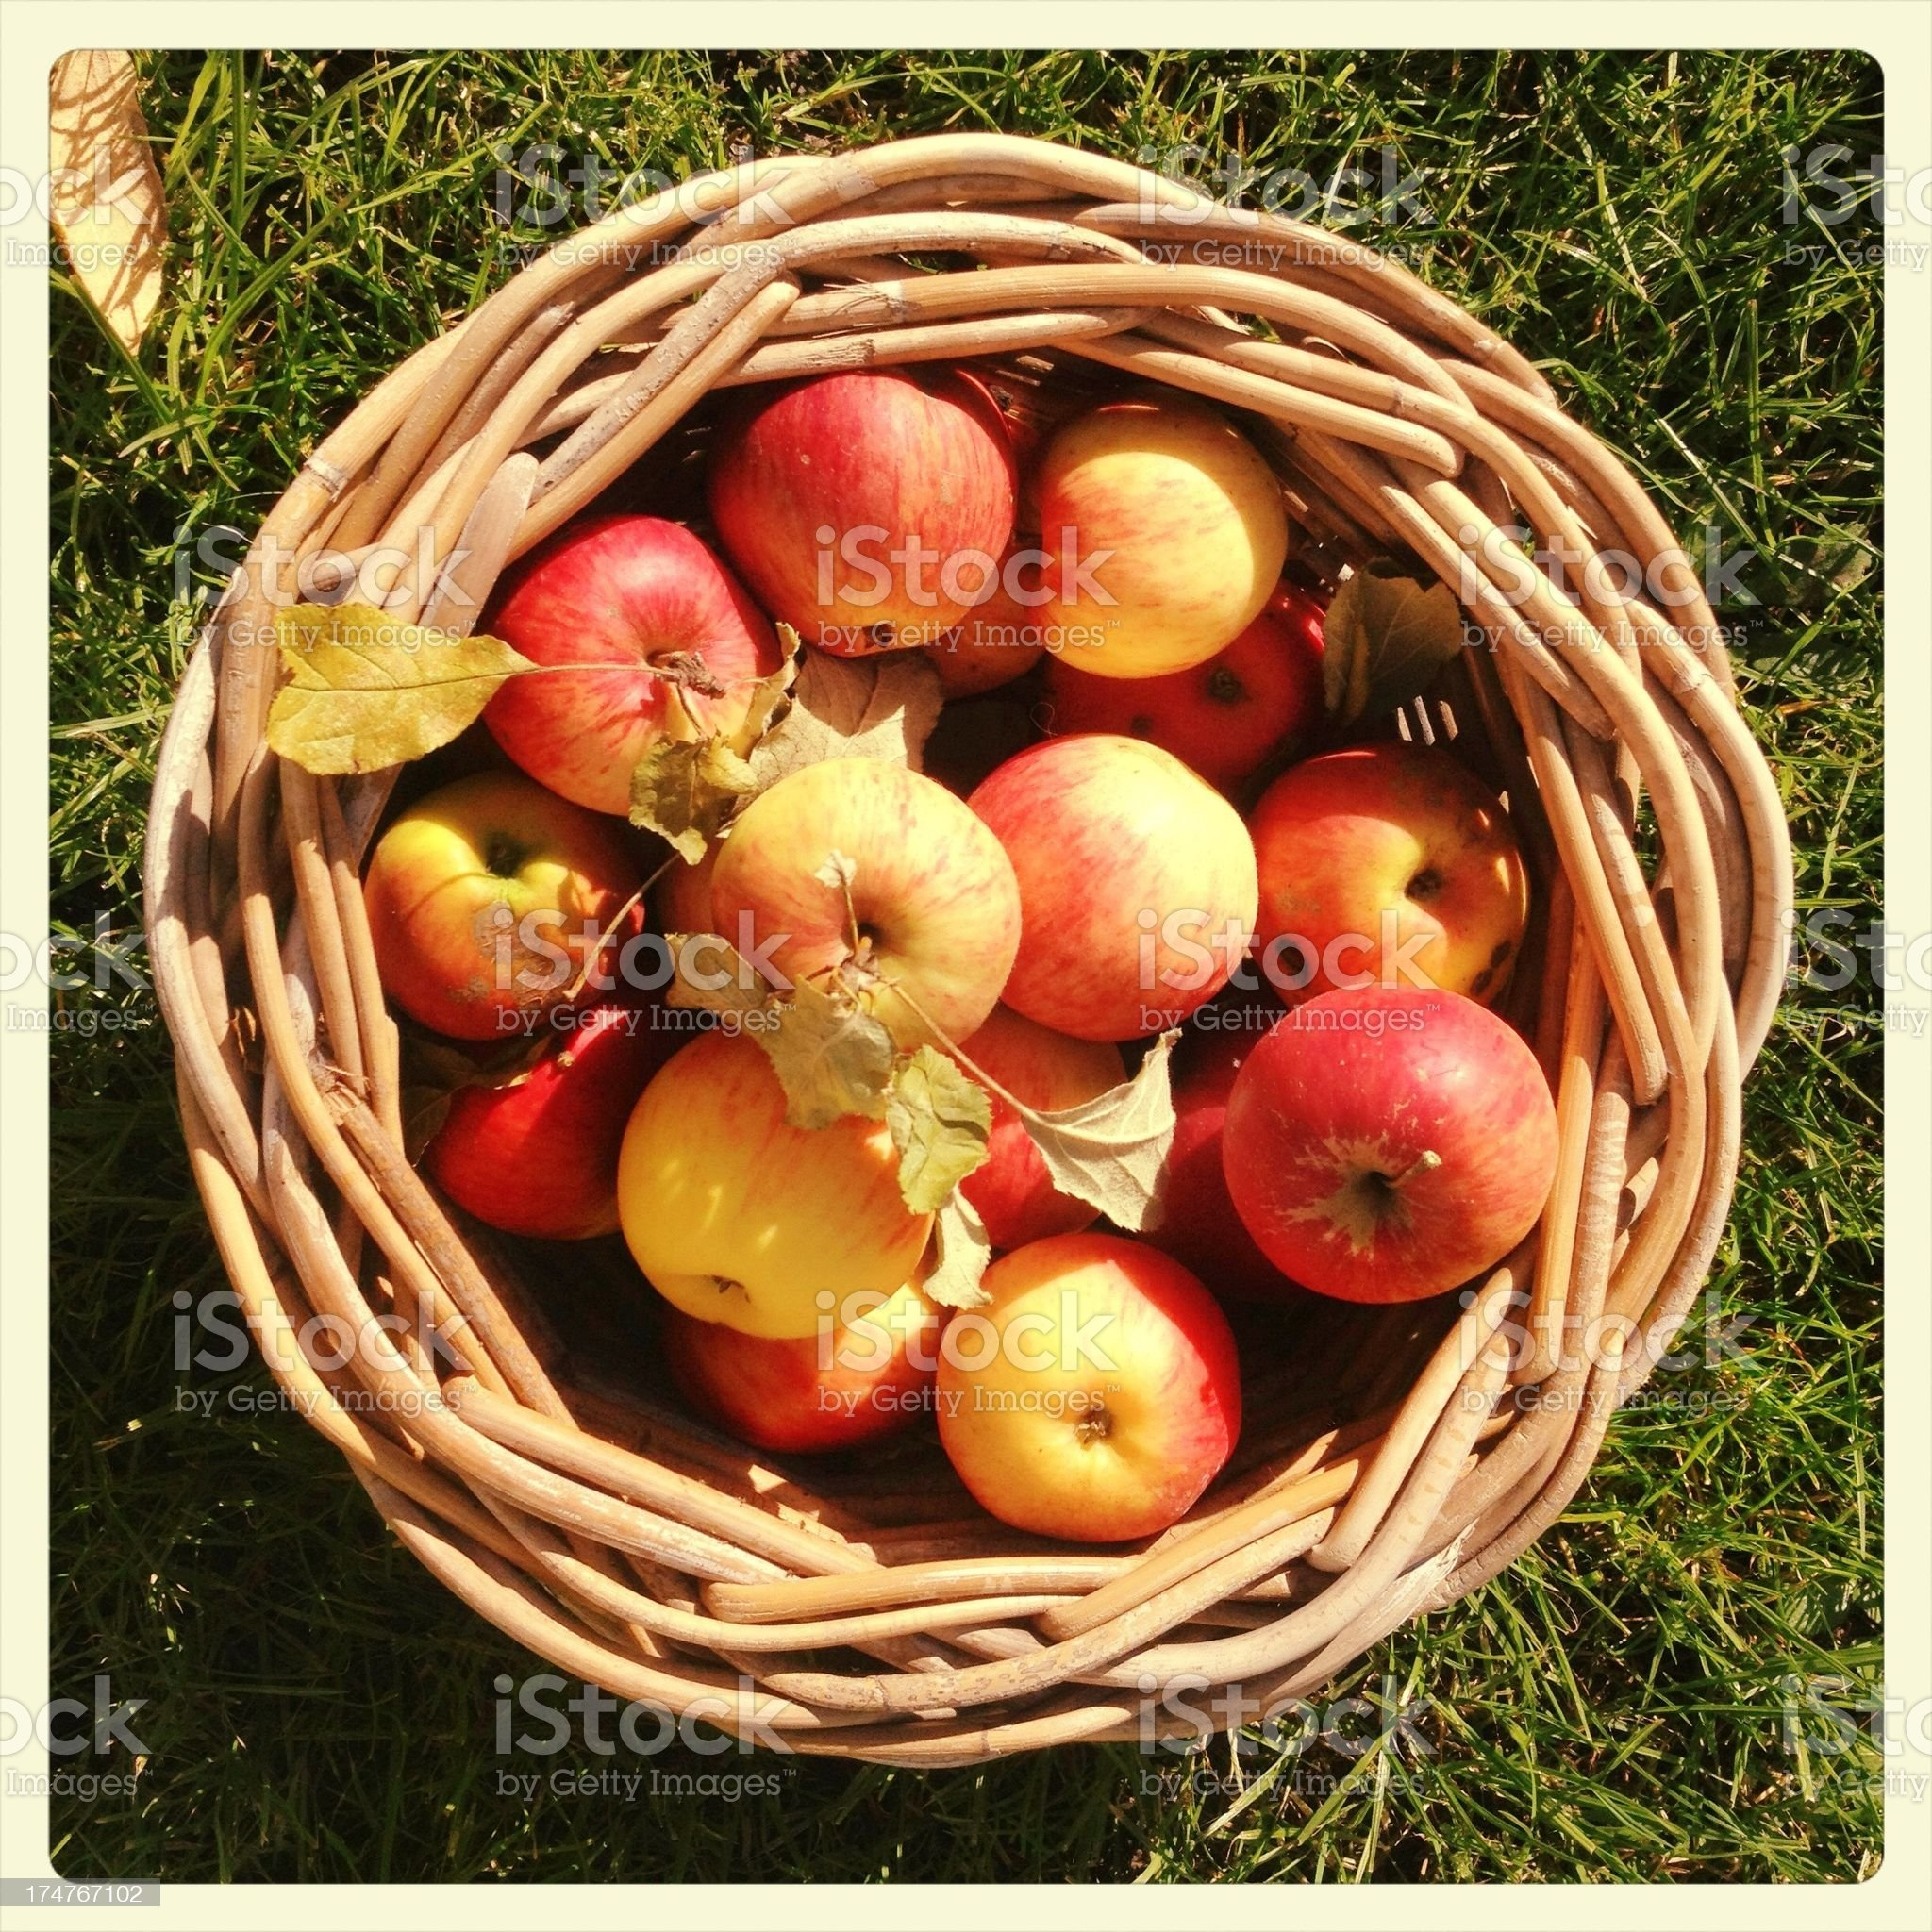 apples in a basket royalty-free stock photo